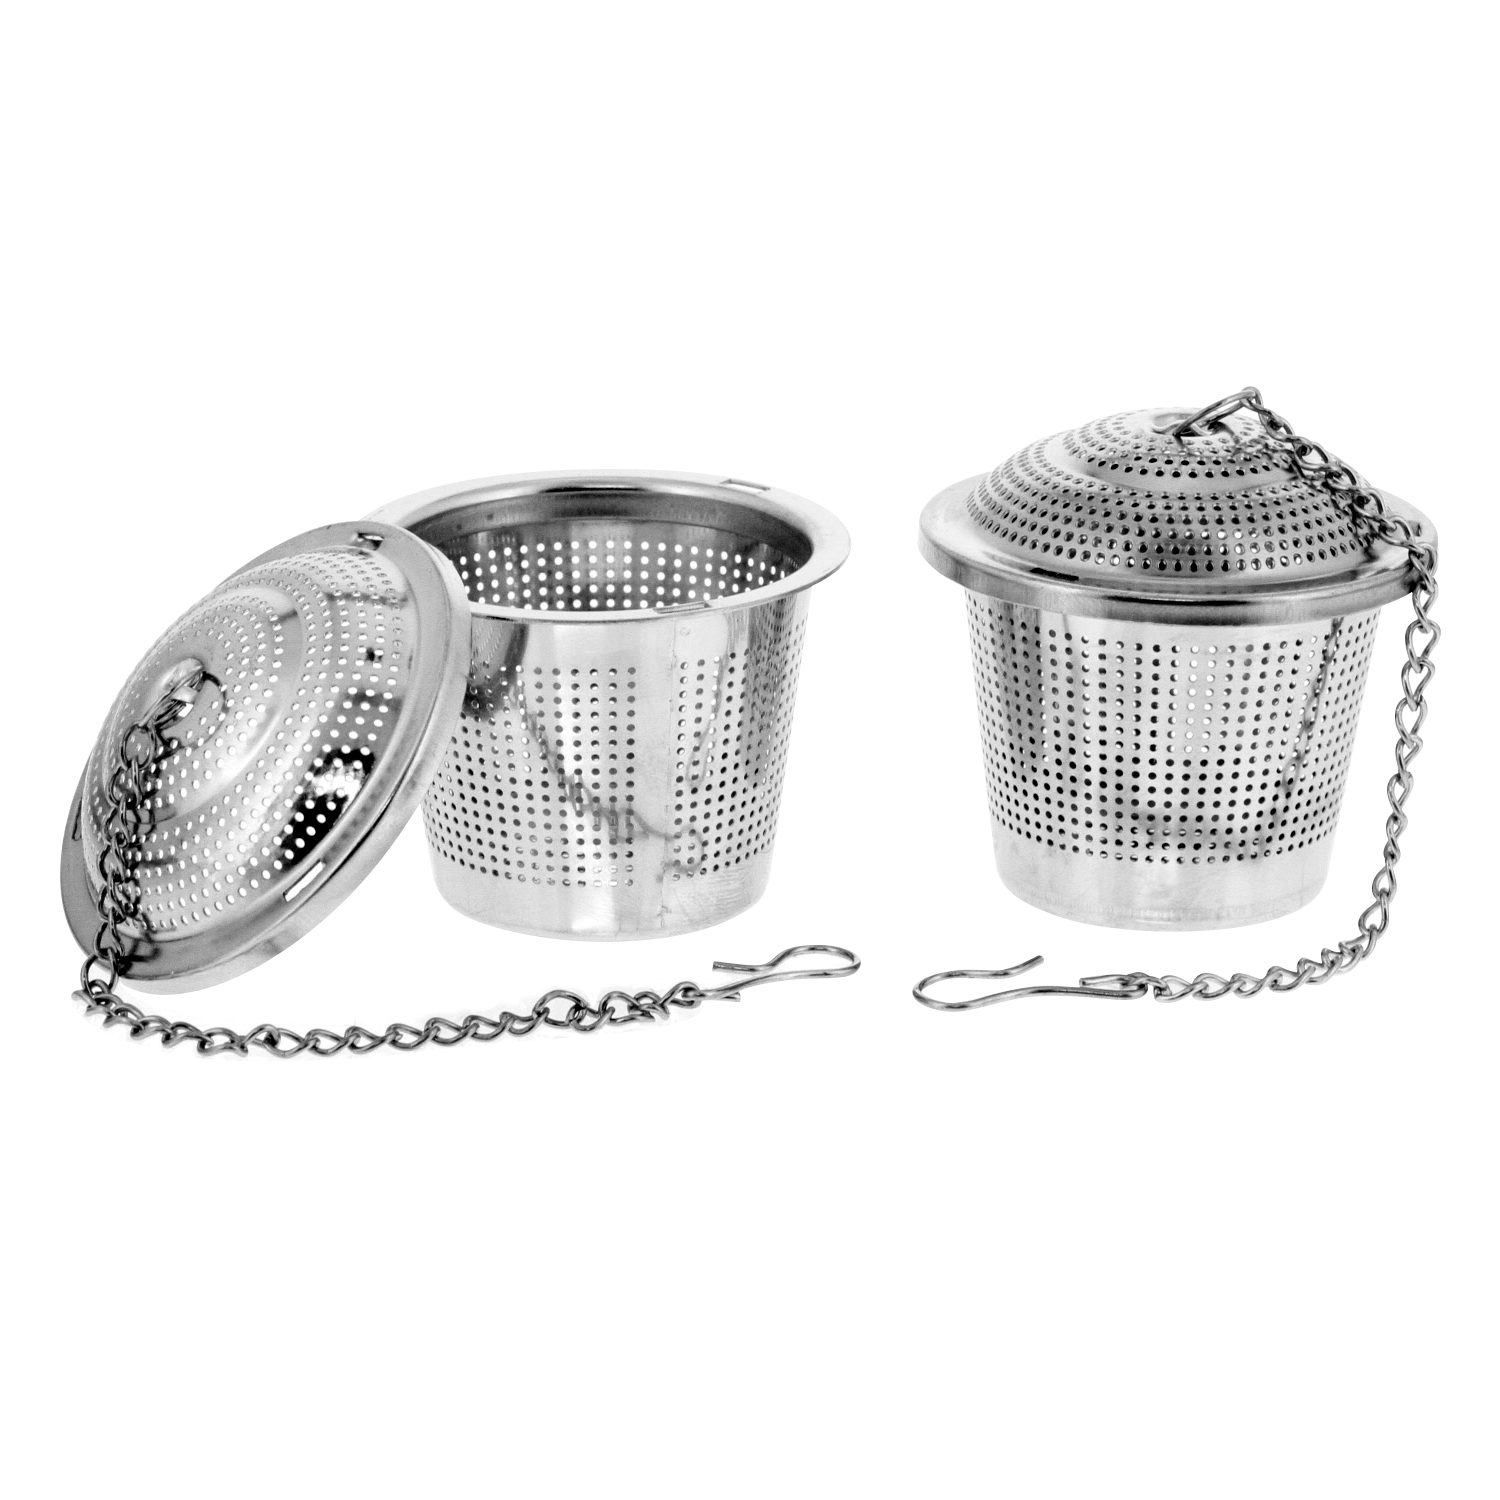 Silver Easy to Clean Tea Steeper Baskets Safe Transer Stainless steel Tea Infuser Tea Strainers Small Teapot for Steeping Loose Leaf Tea Easy to Use